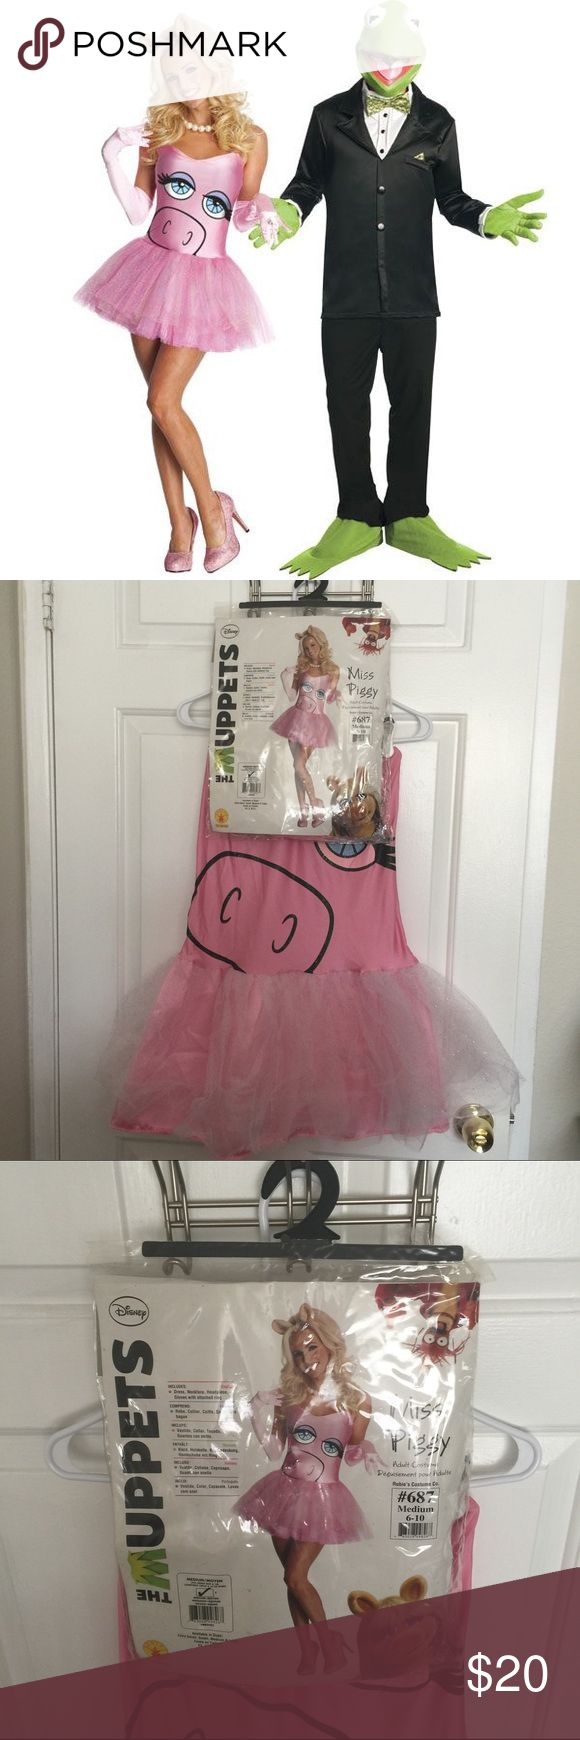 Miss Piggy costume! Great for Halloween or costume party! Worn once includes all original accessories plus I'll send the tan opaque tights for the complete look! Comes with dress (attached tutu skirt) pearl necklace, ears, and gloves. Size M. Disney Dresses Mini